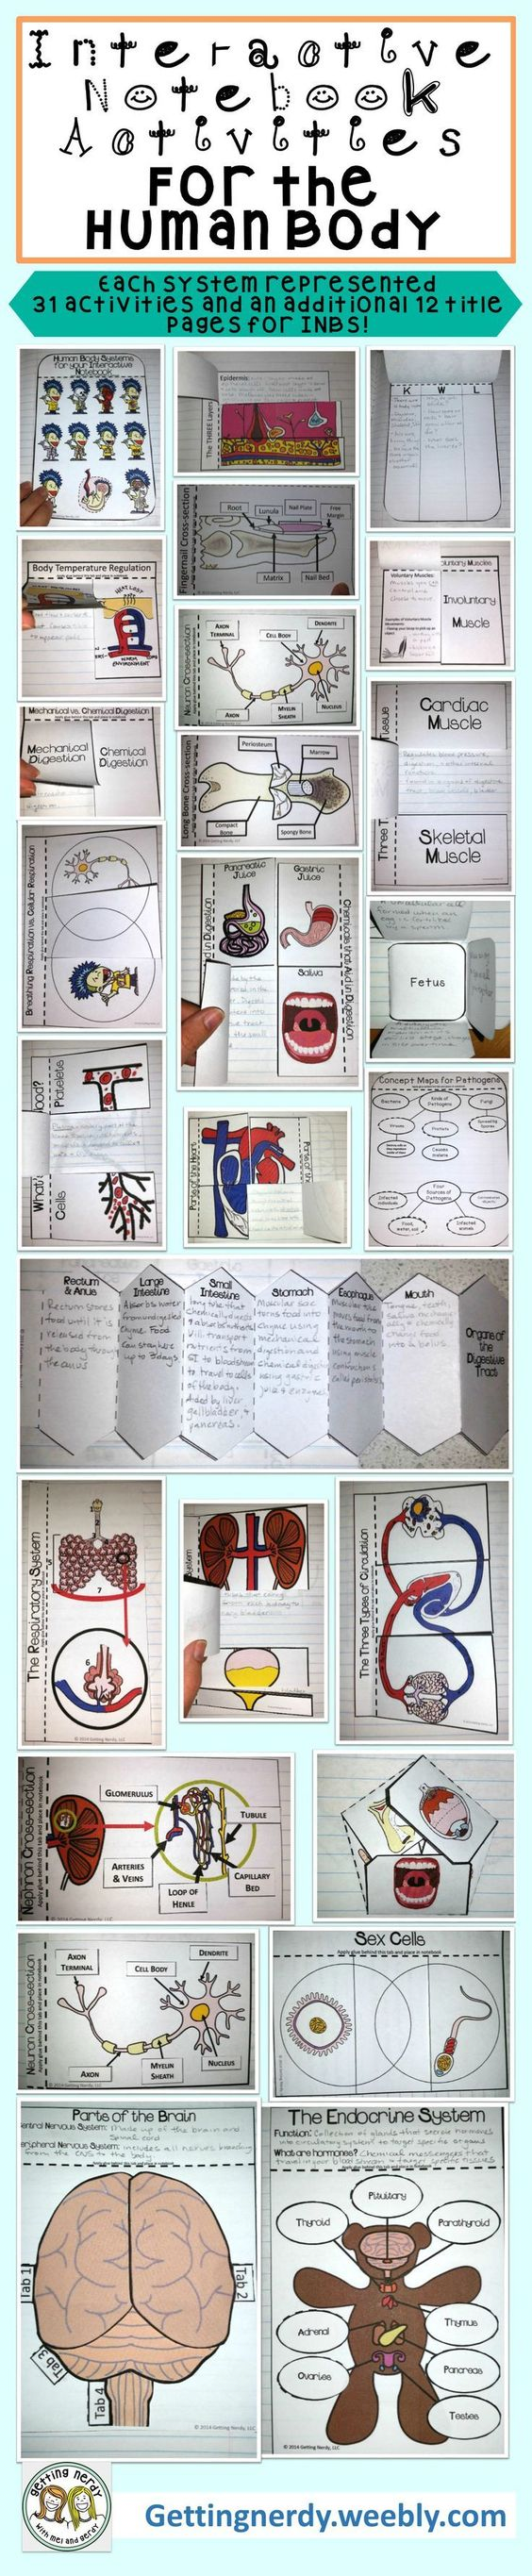 human body systems science interactive notebook activities notebooks interactive science. Black Bedroom Furniture Sets. Home Design Ideas